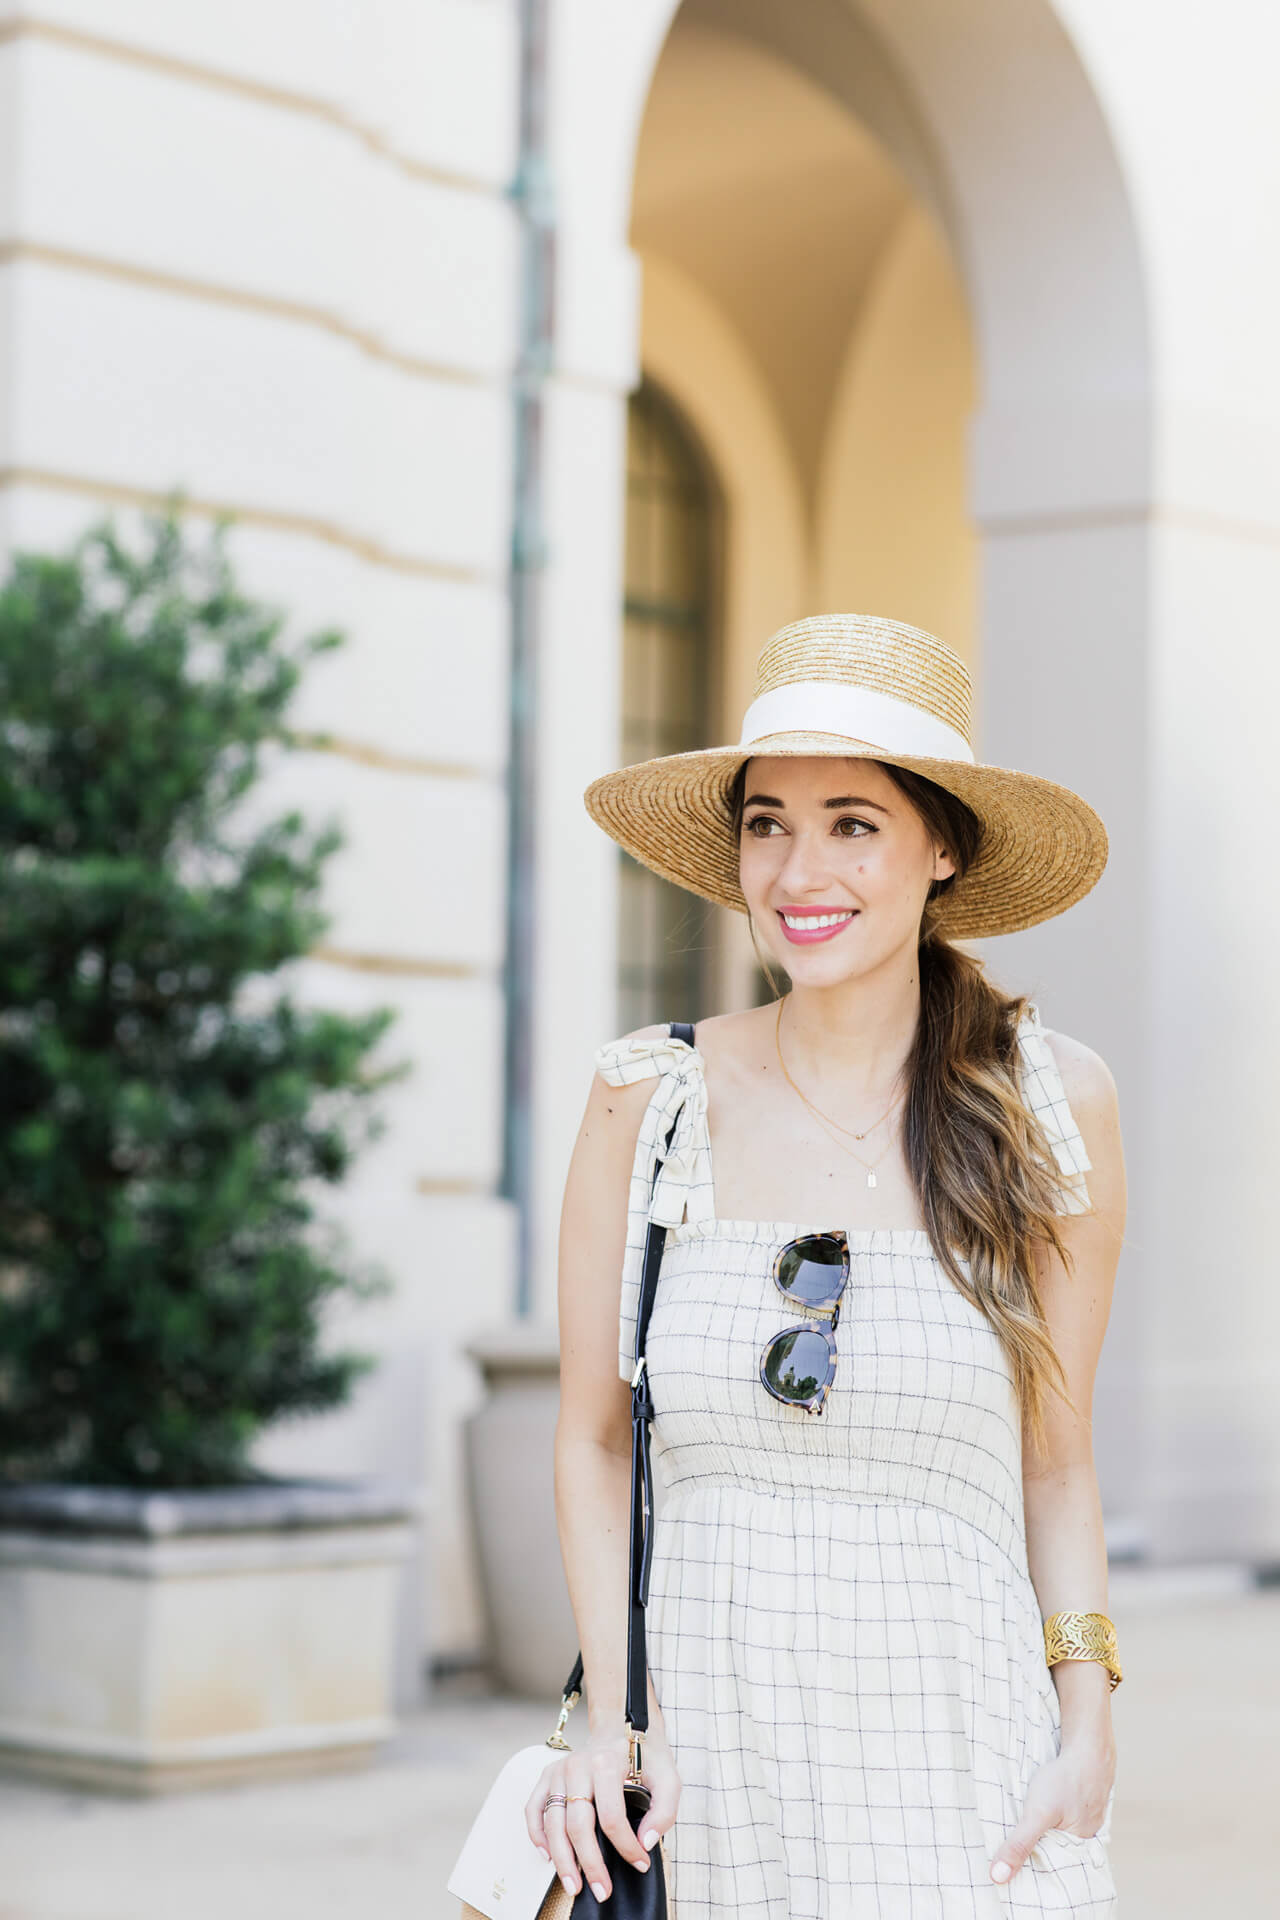 Cute summer straw hat with sunglasses